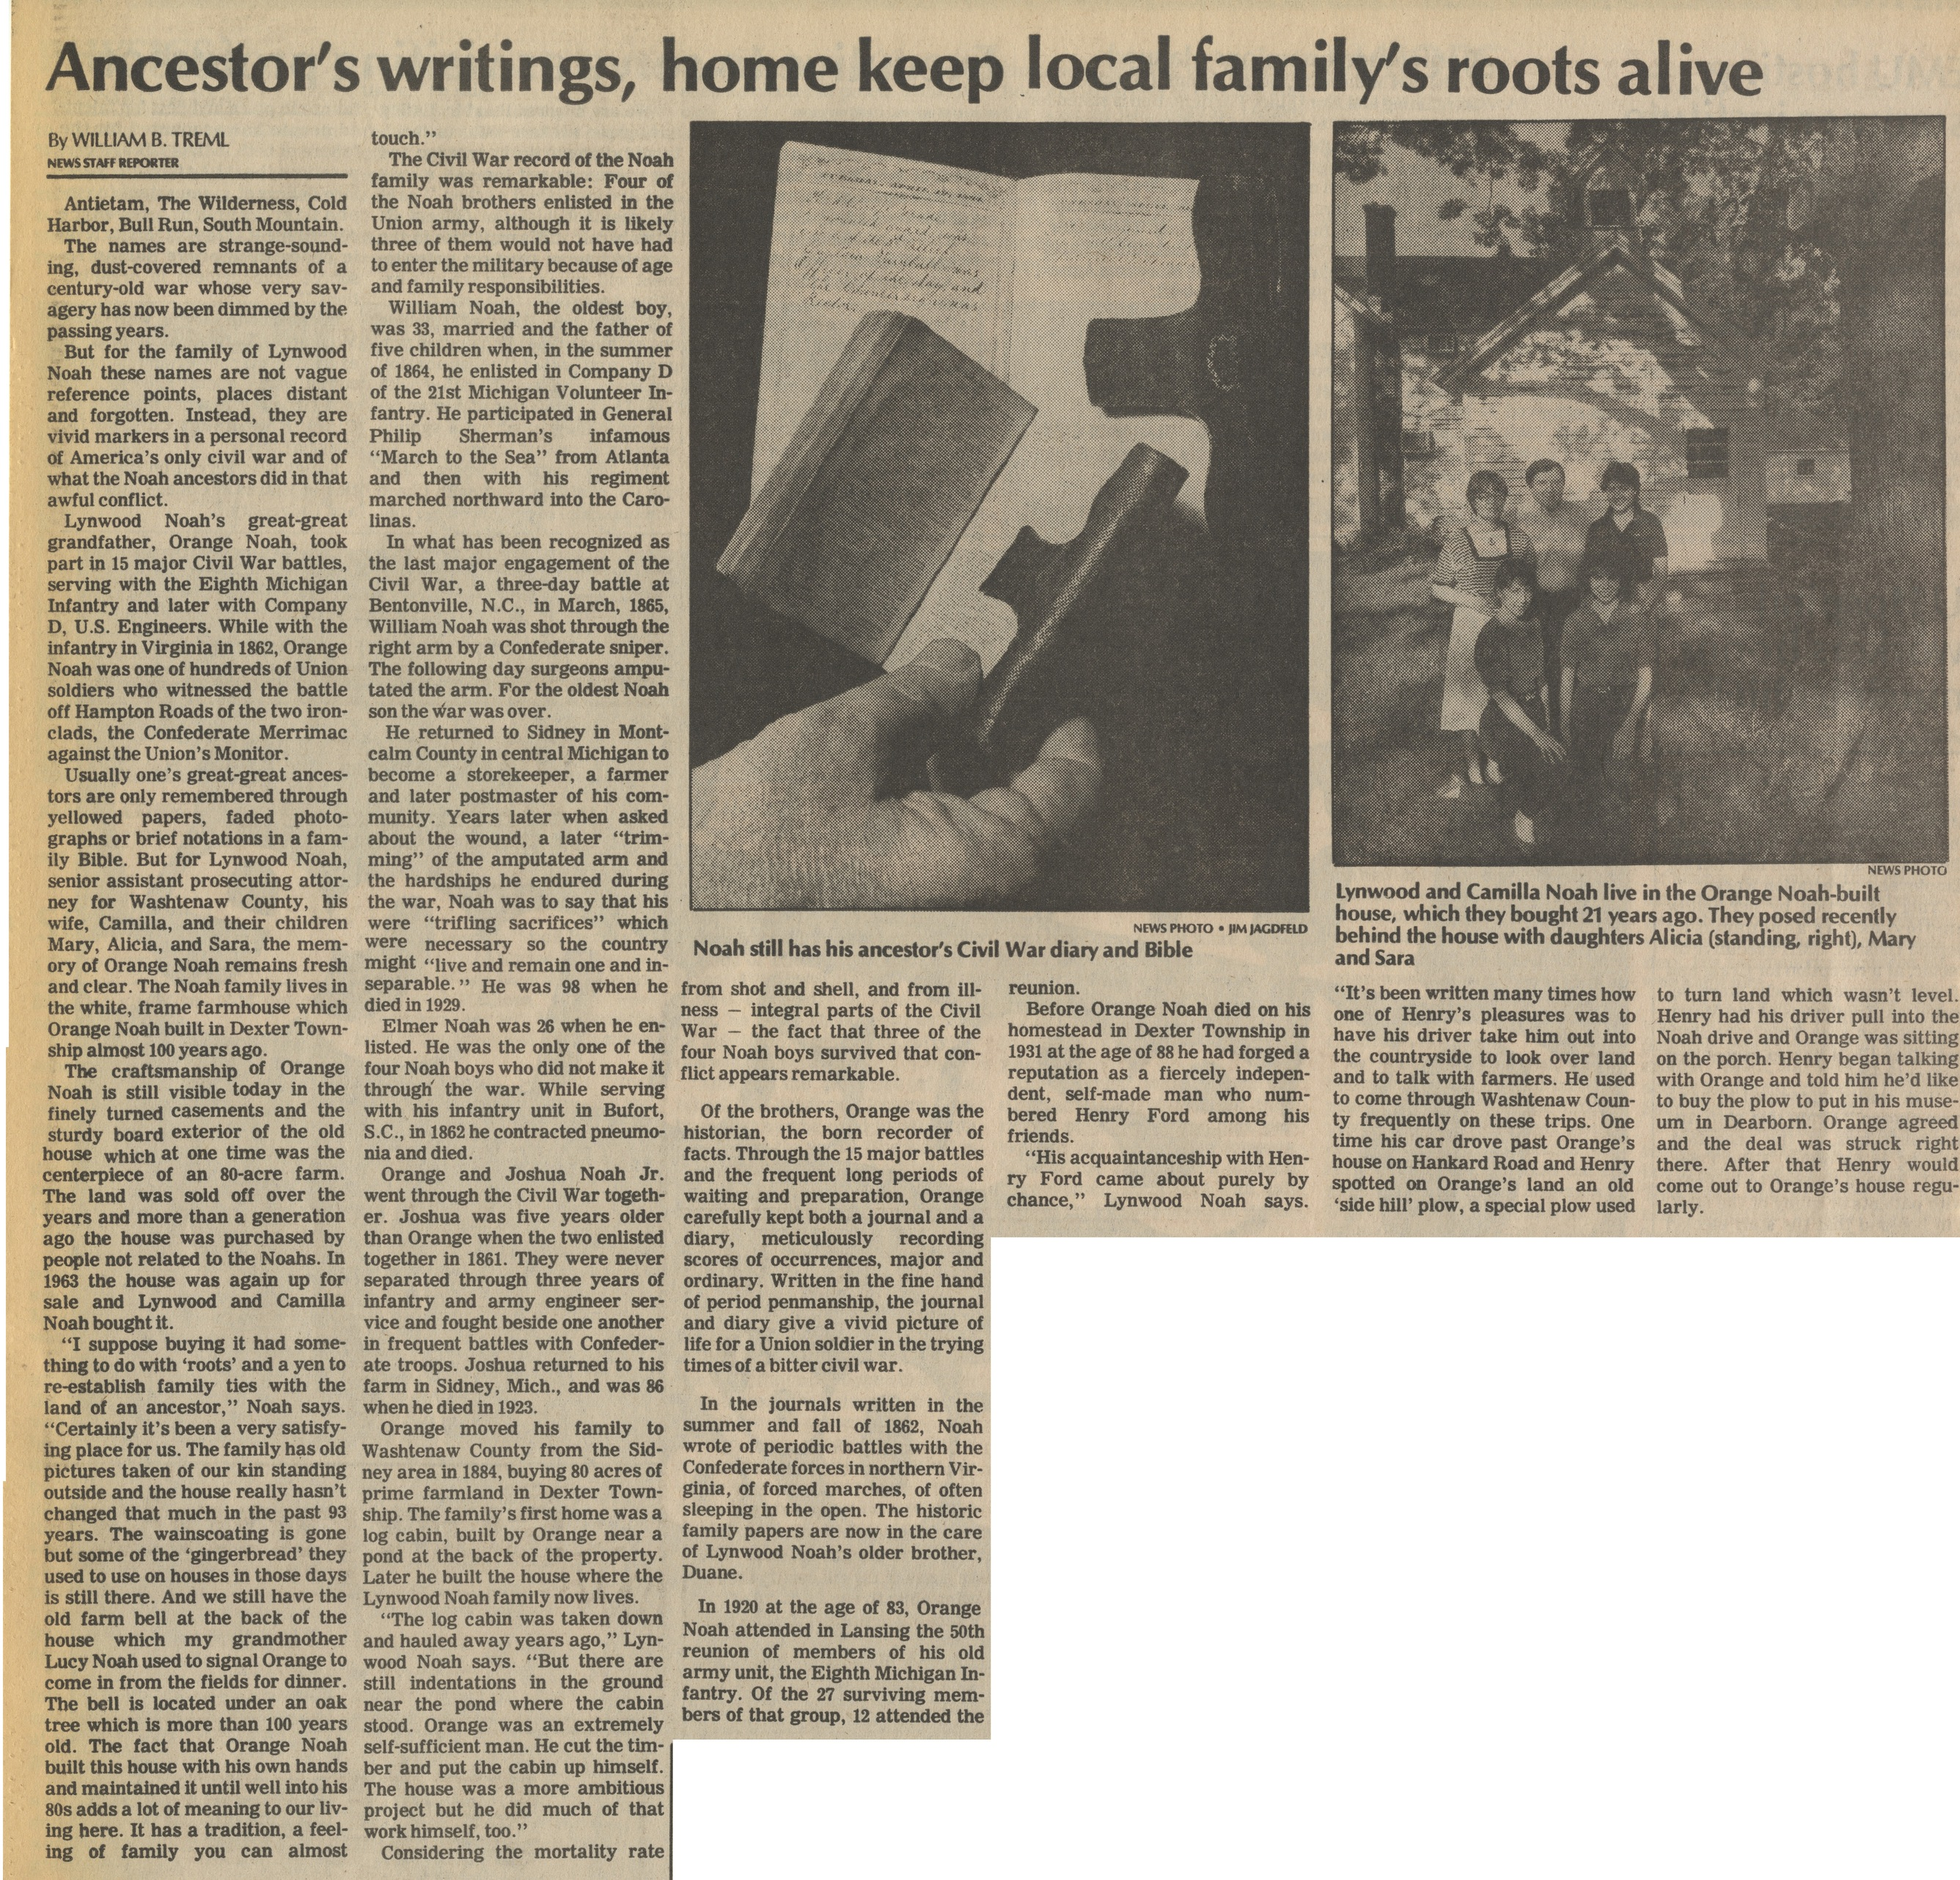 Ancestor's Writings, Home Keep Local Family's Roots Alive image